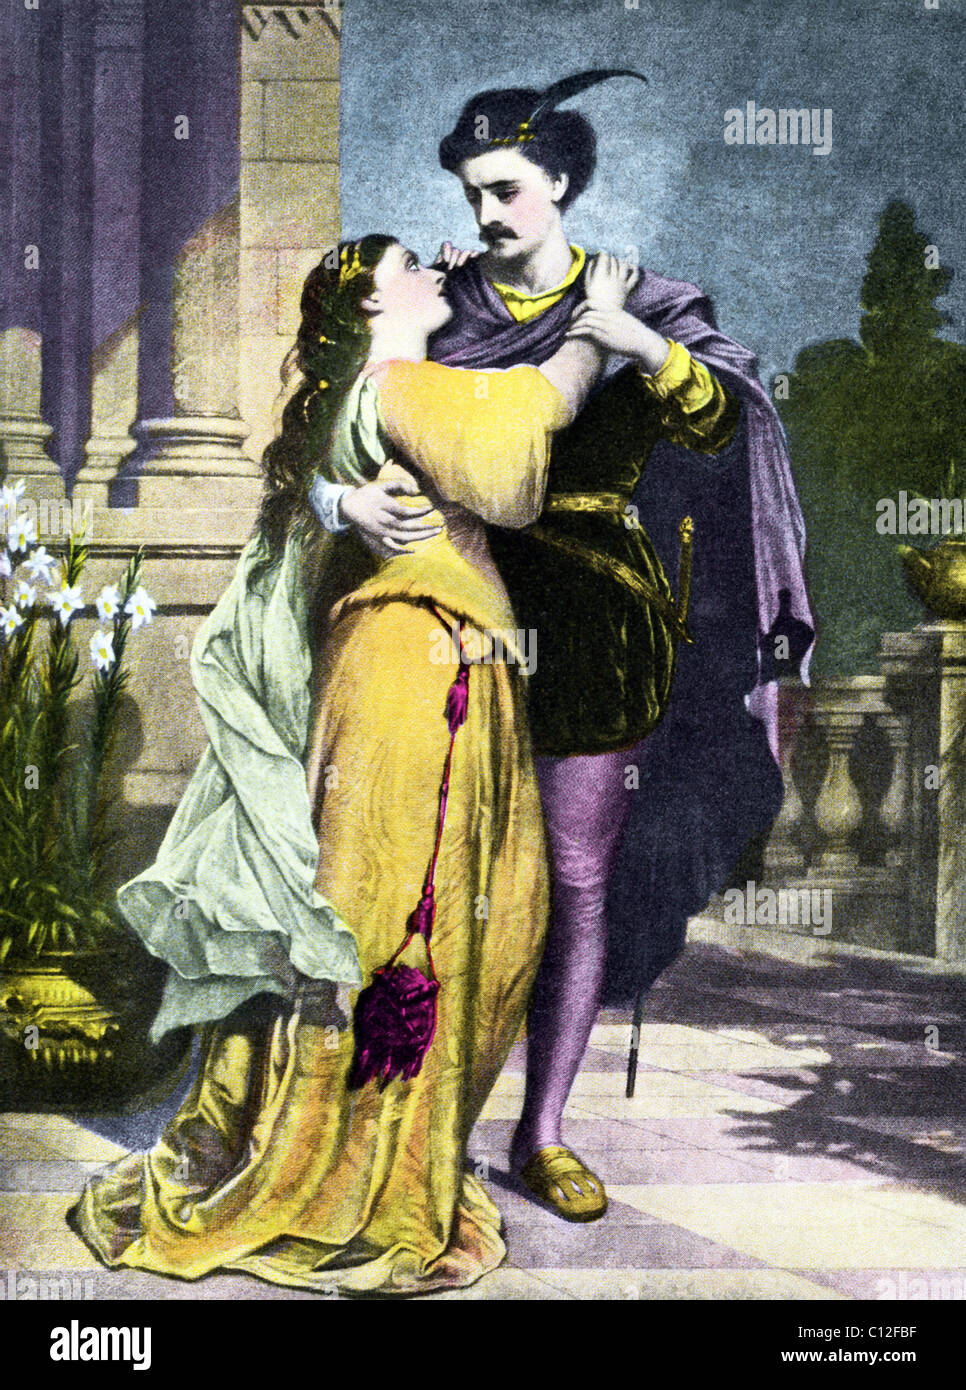 an overview of the star crossed lovers in romeo and juliet a play by william shakespeare The tragedy of romeo and juliet, a tragic play by william shakespeare, is the story of two star-crossed lovers who are plagued by the hatred and detestation of their respective families.